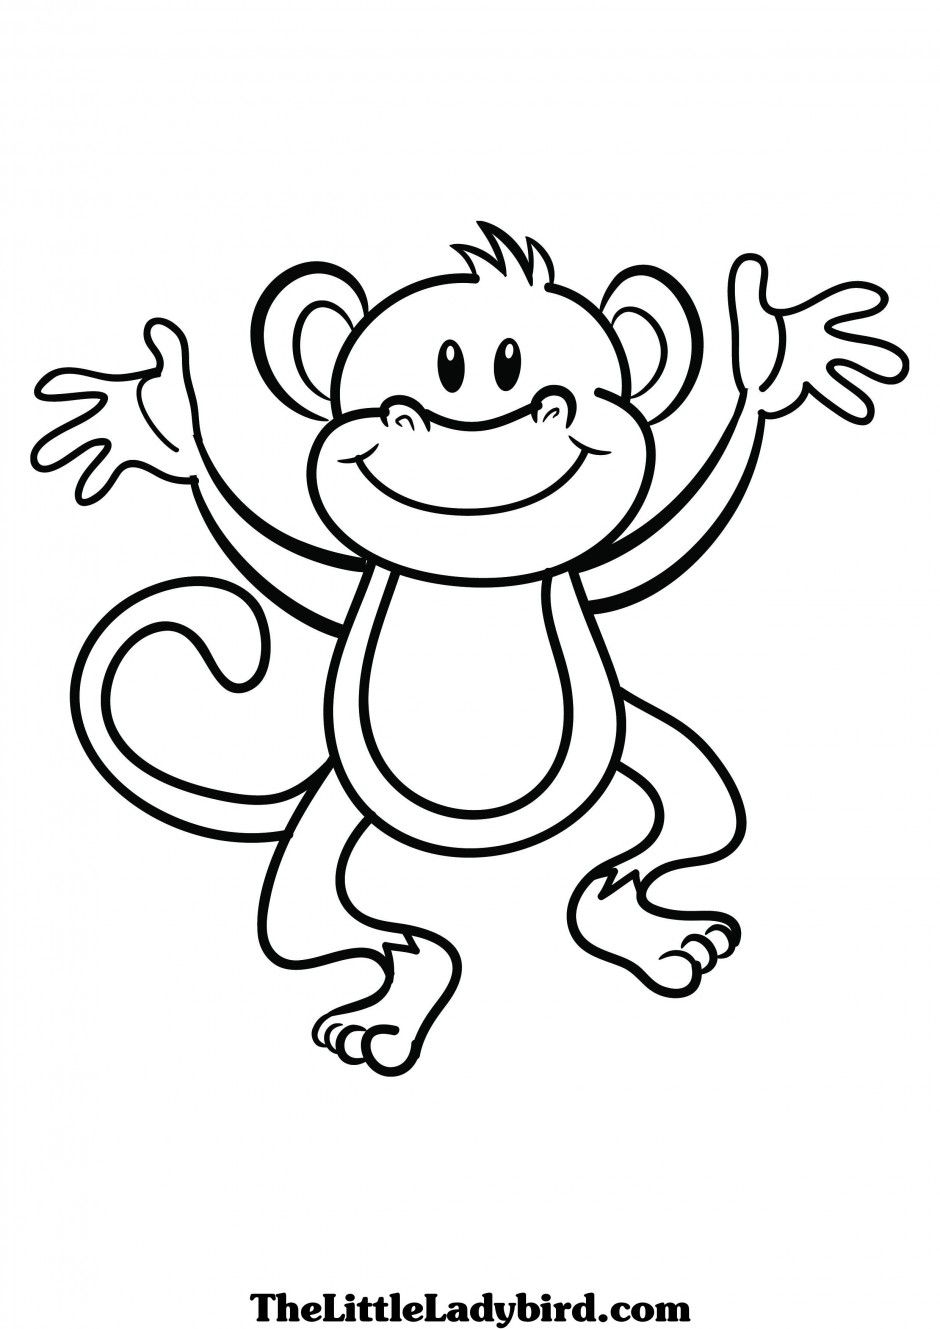 cute-monkey-clip-art-black-and-white-Monkey-coloring-pages-Monkey ...